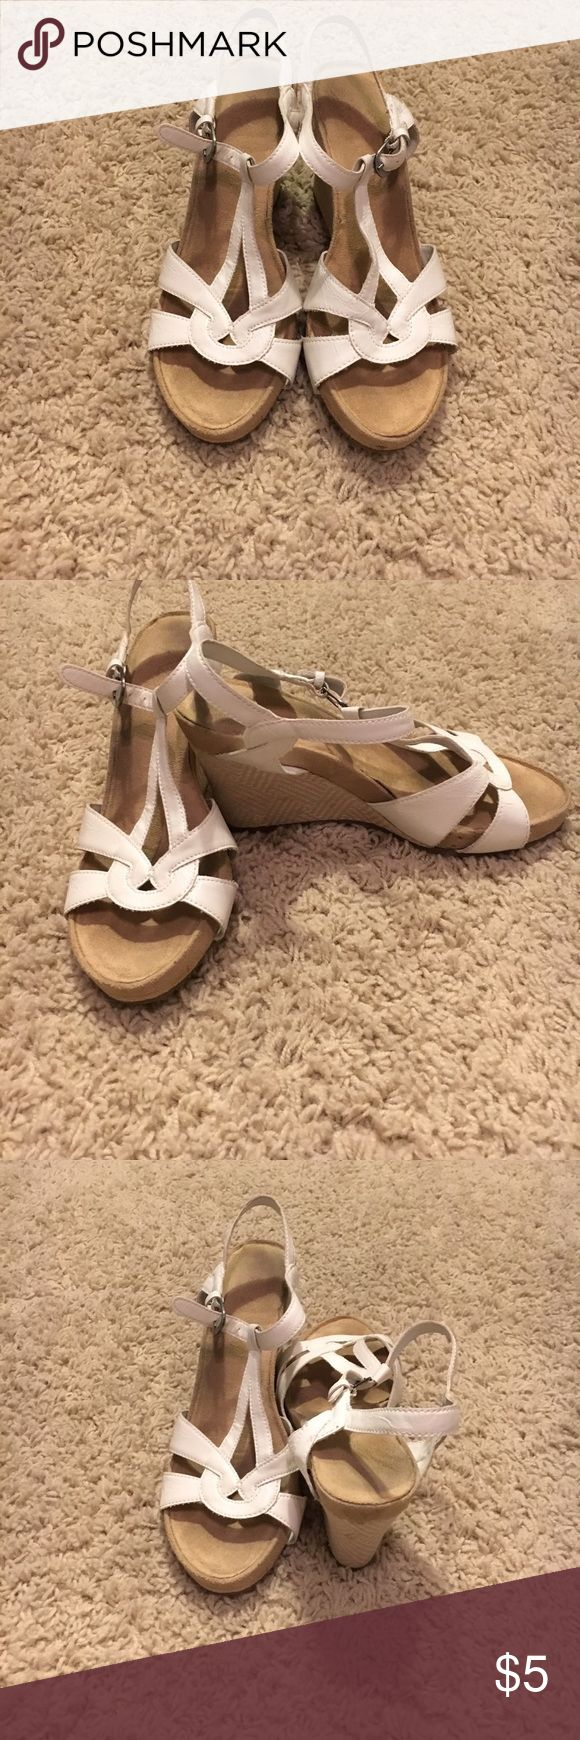 White wedges Strappy white and tan wedges Shoes Wedges